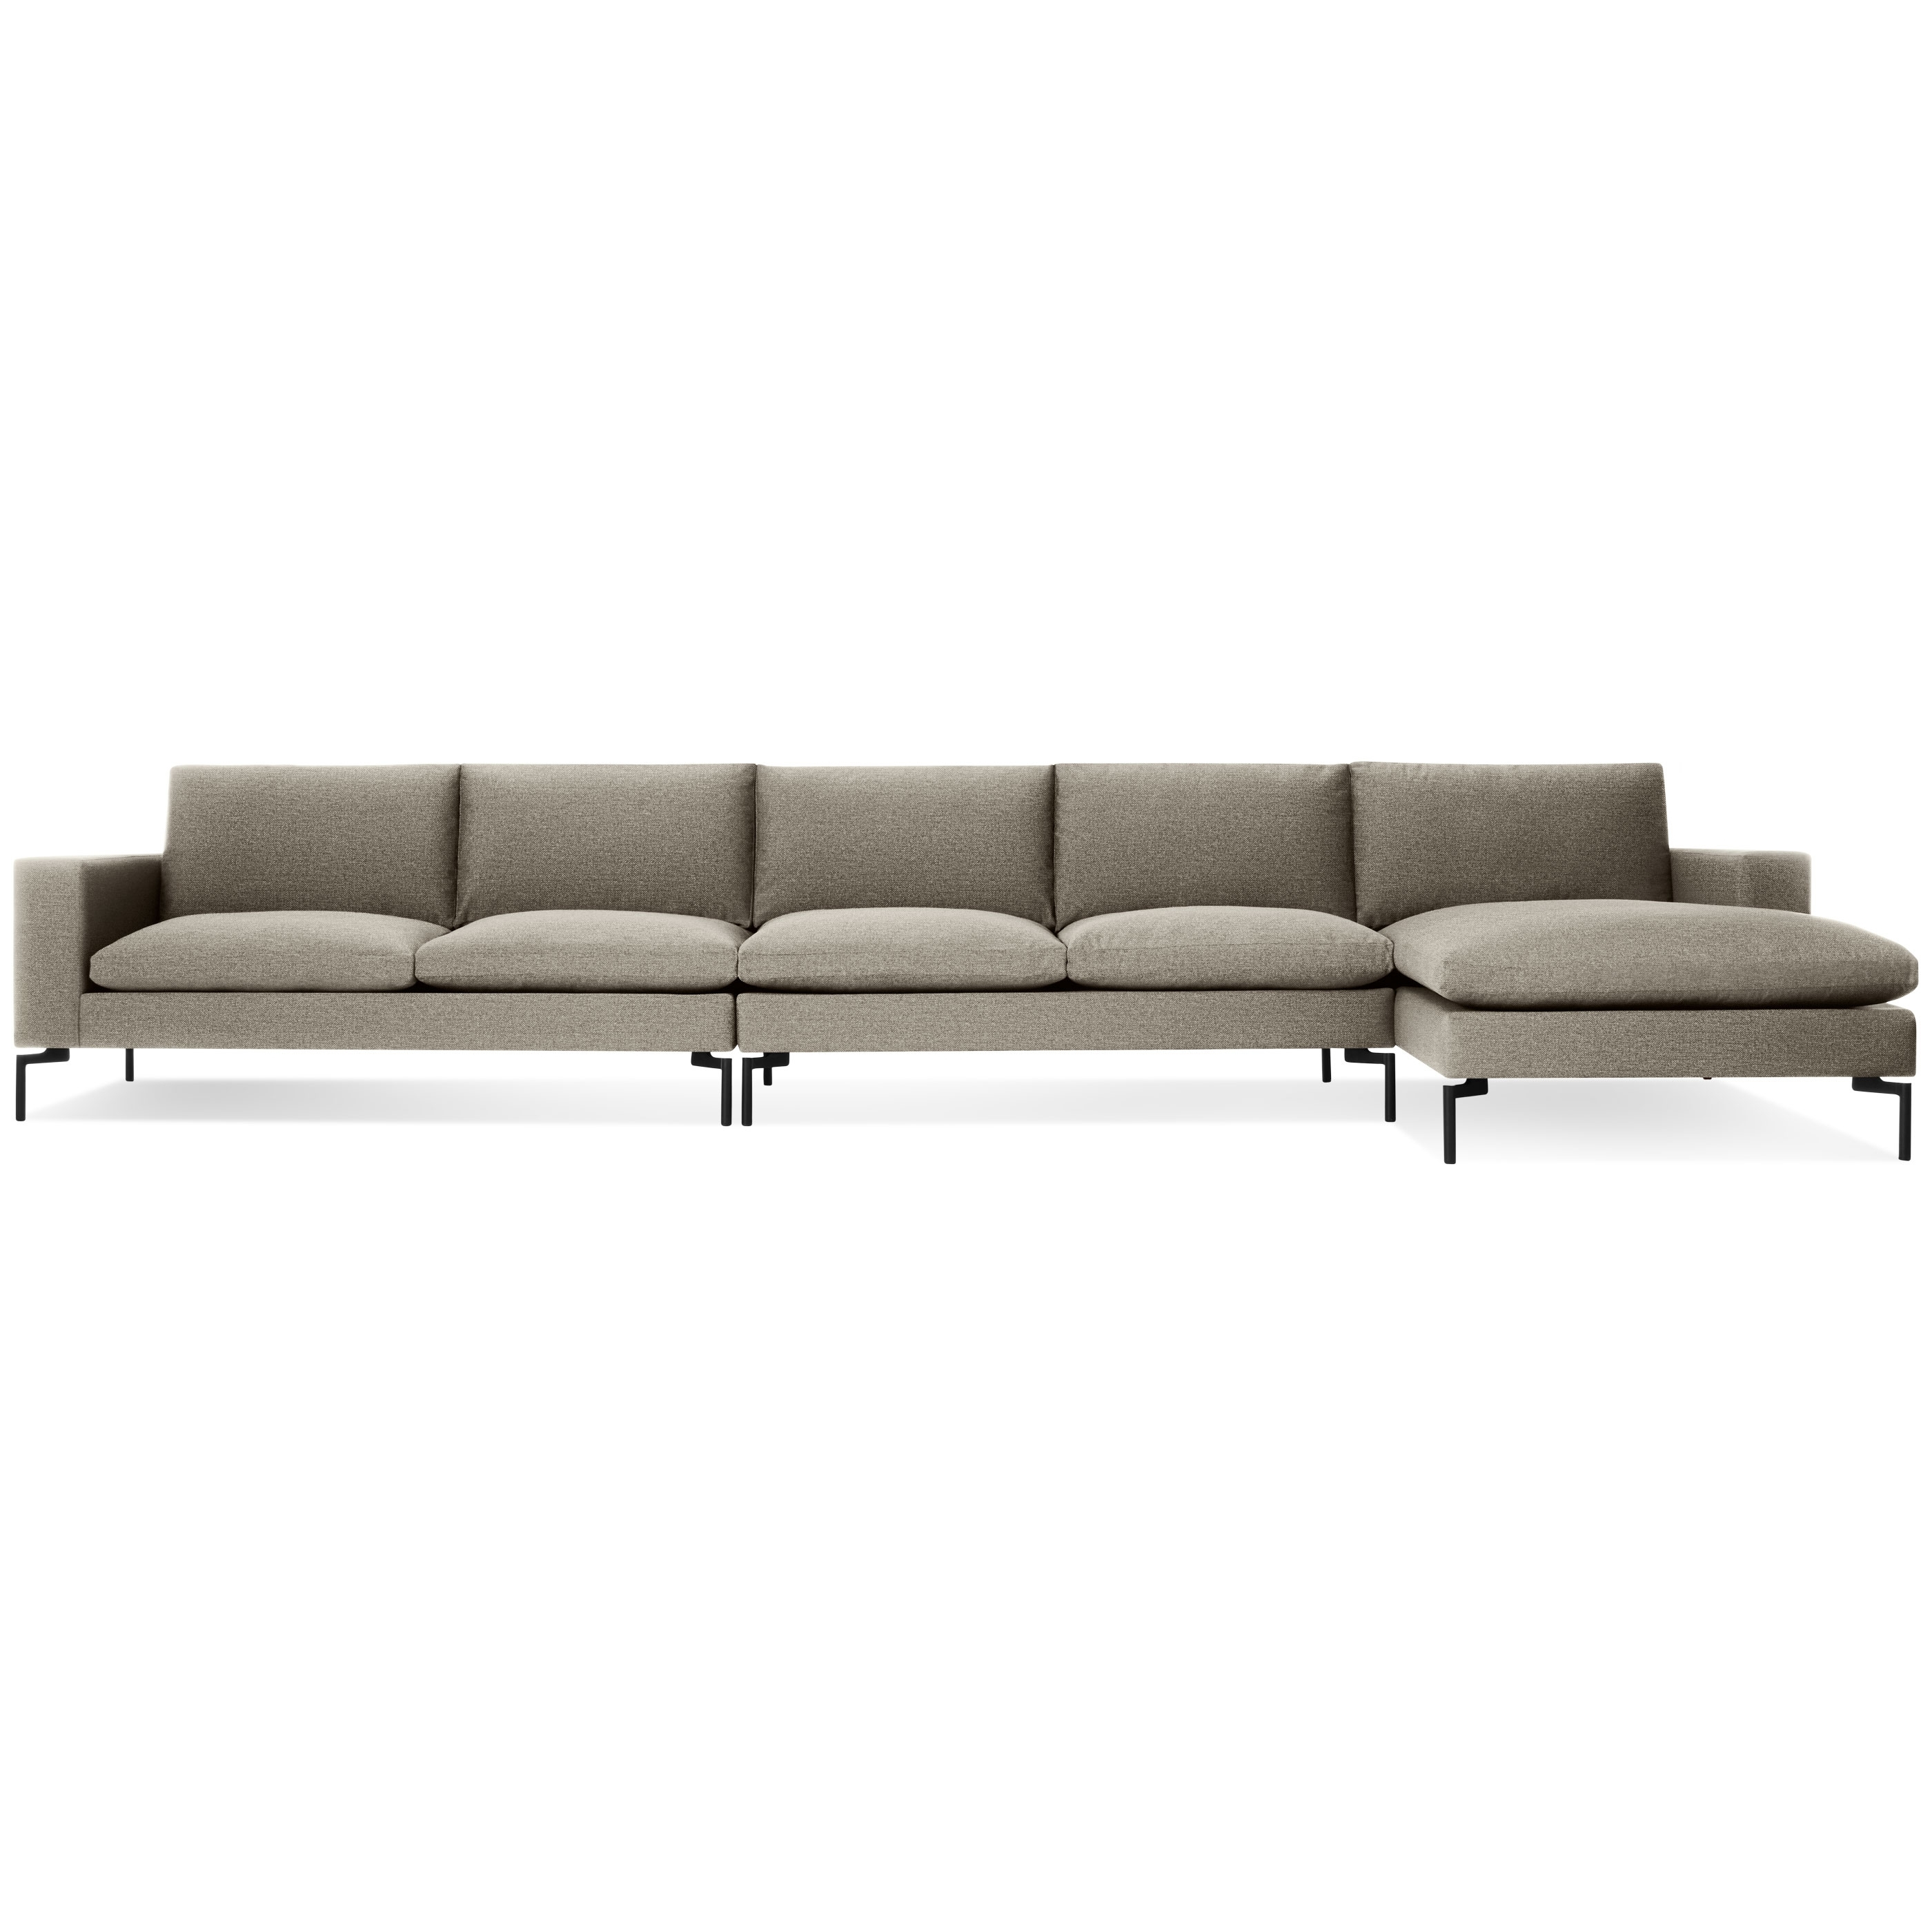 New Standard Medium Sectional Sofa   Modern Sectional Sofas | Blu Dot Inside Newfoundland Sectional Sofas (Photo 5 of 10)